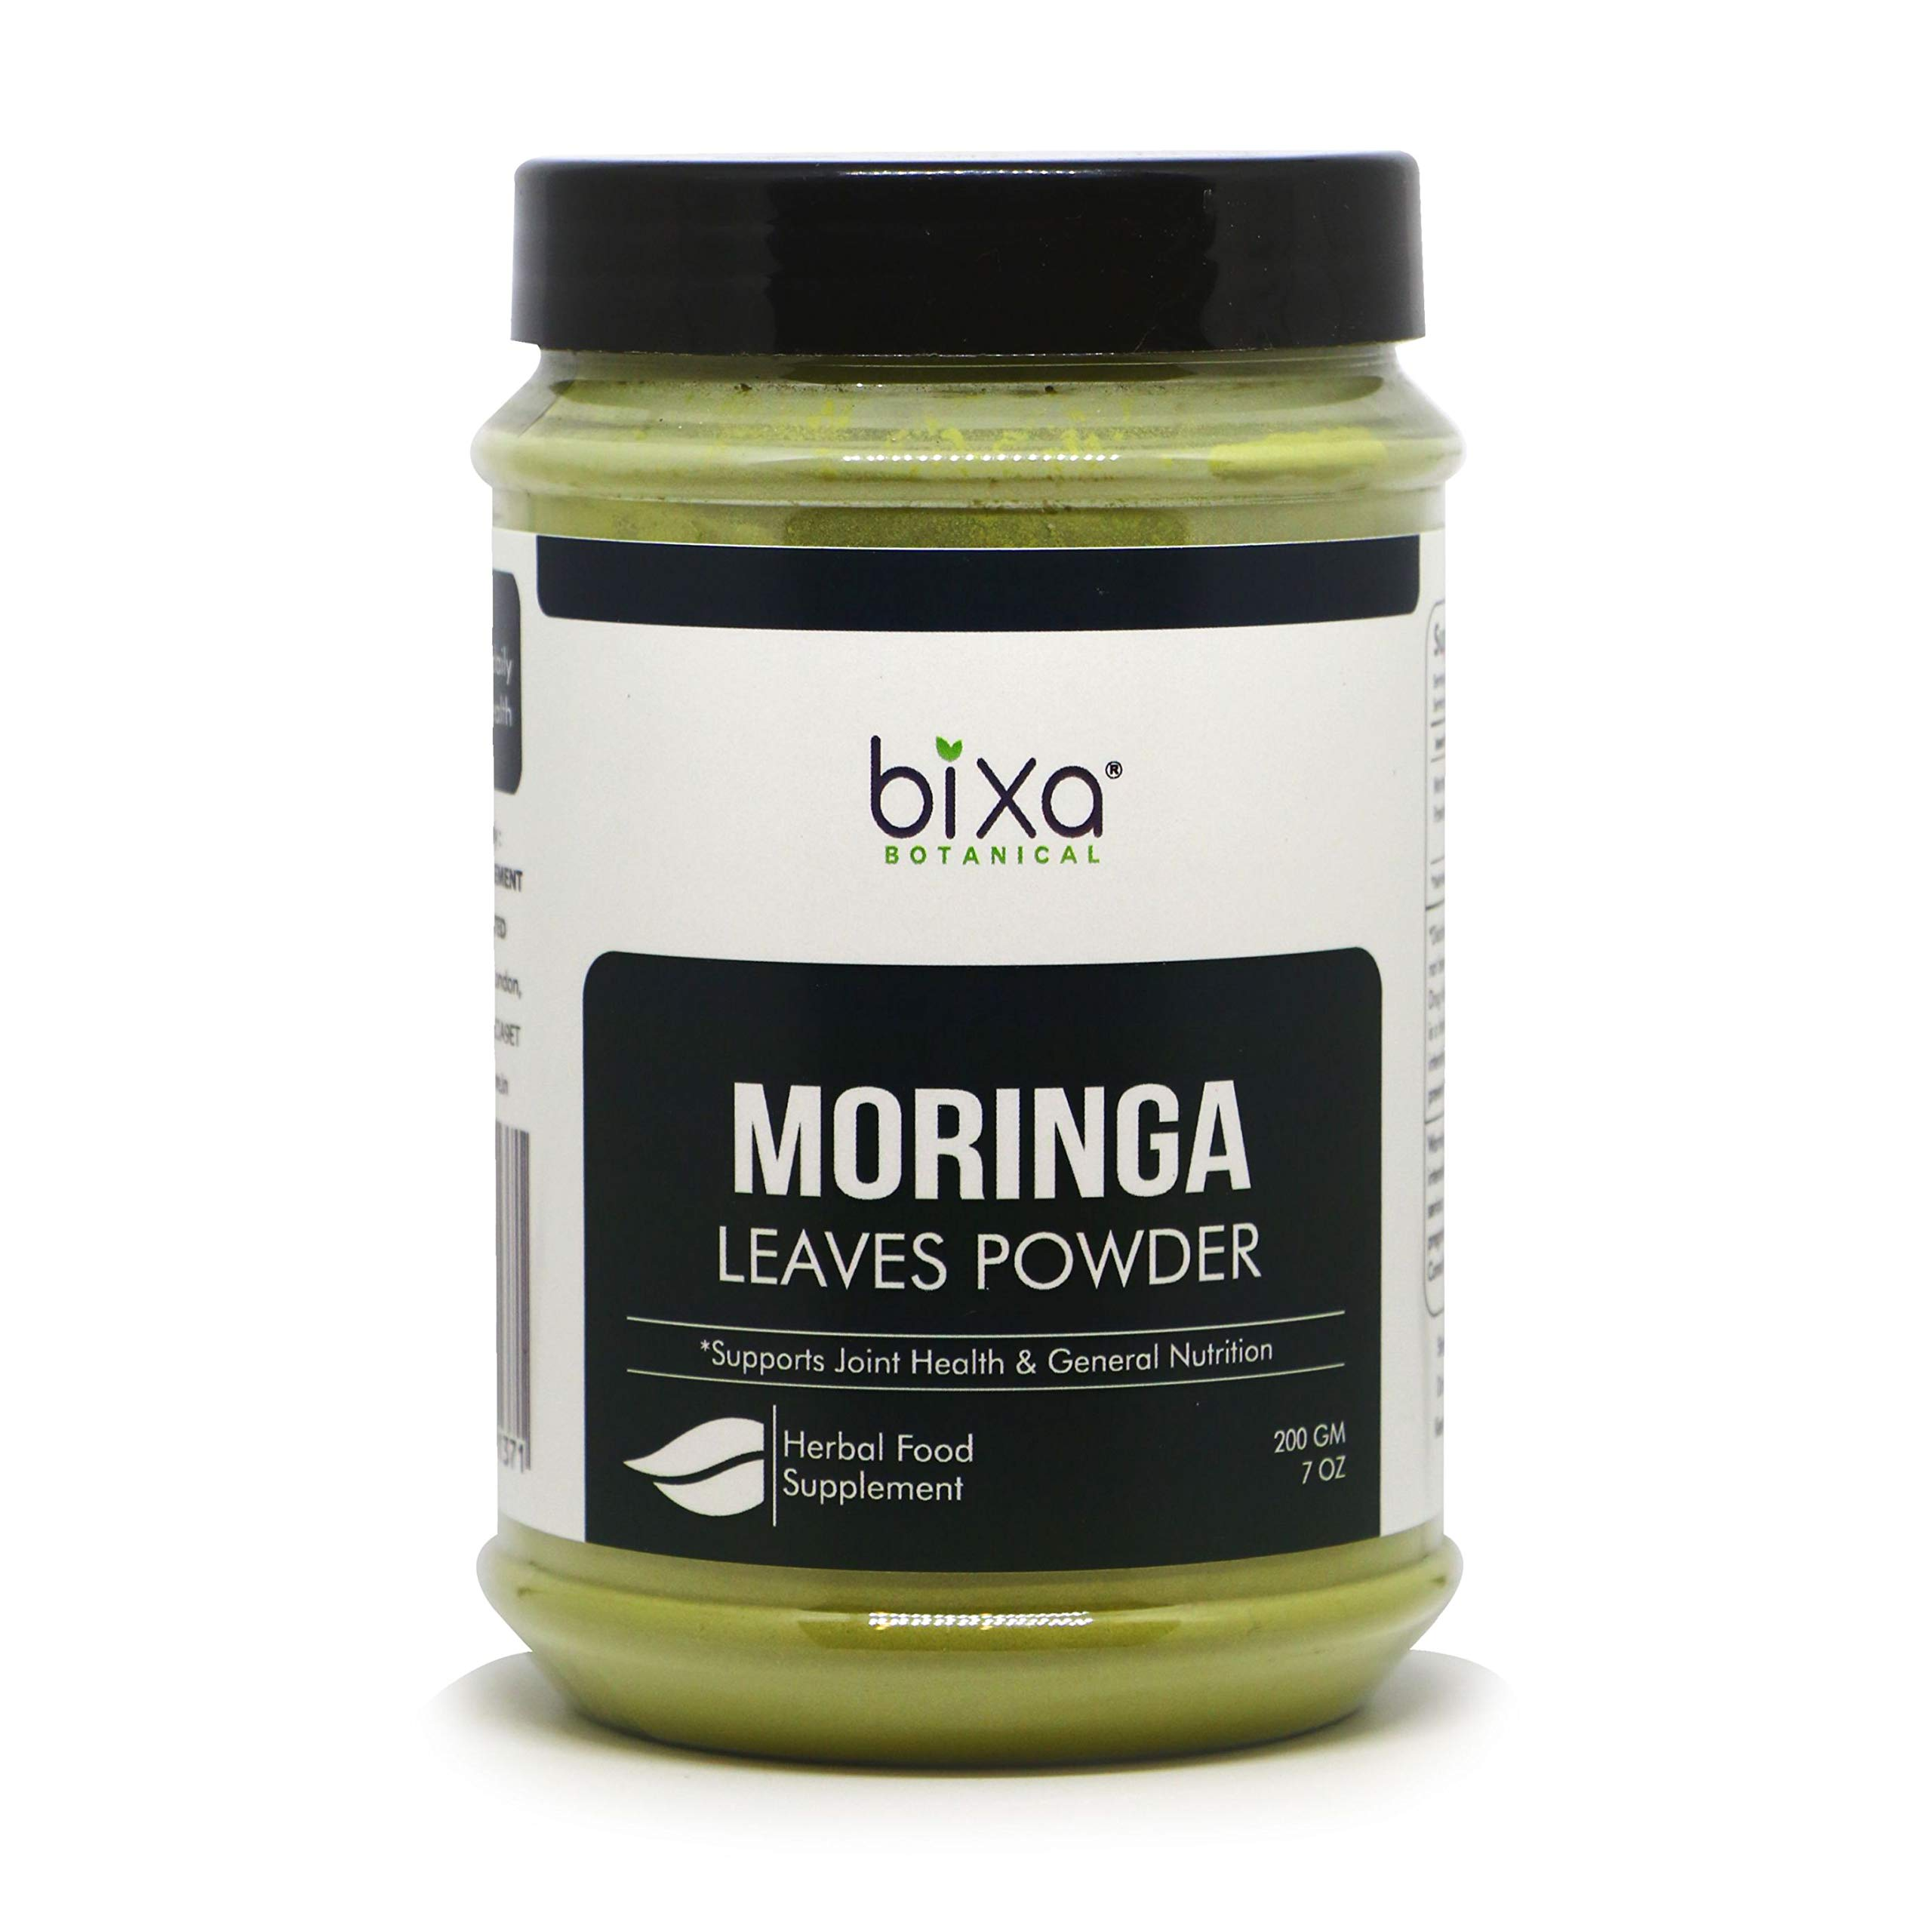 Moringa Leaves Powder (Moringa Oleifera) - USDA Organic ǀ Multi-Vitamin Green Super Food Supplement ǀ Helps in Joint Pain and Blood Circulation ǀ Pure Natural Nutrition Supplement - 7 Oz (200g)